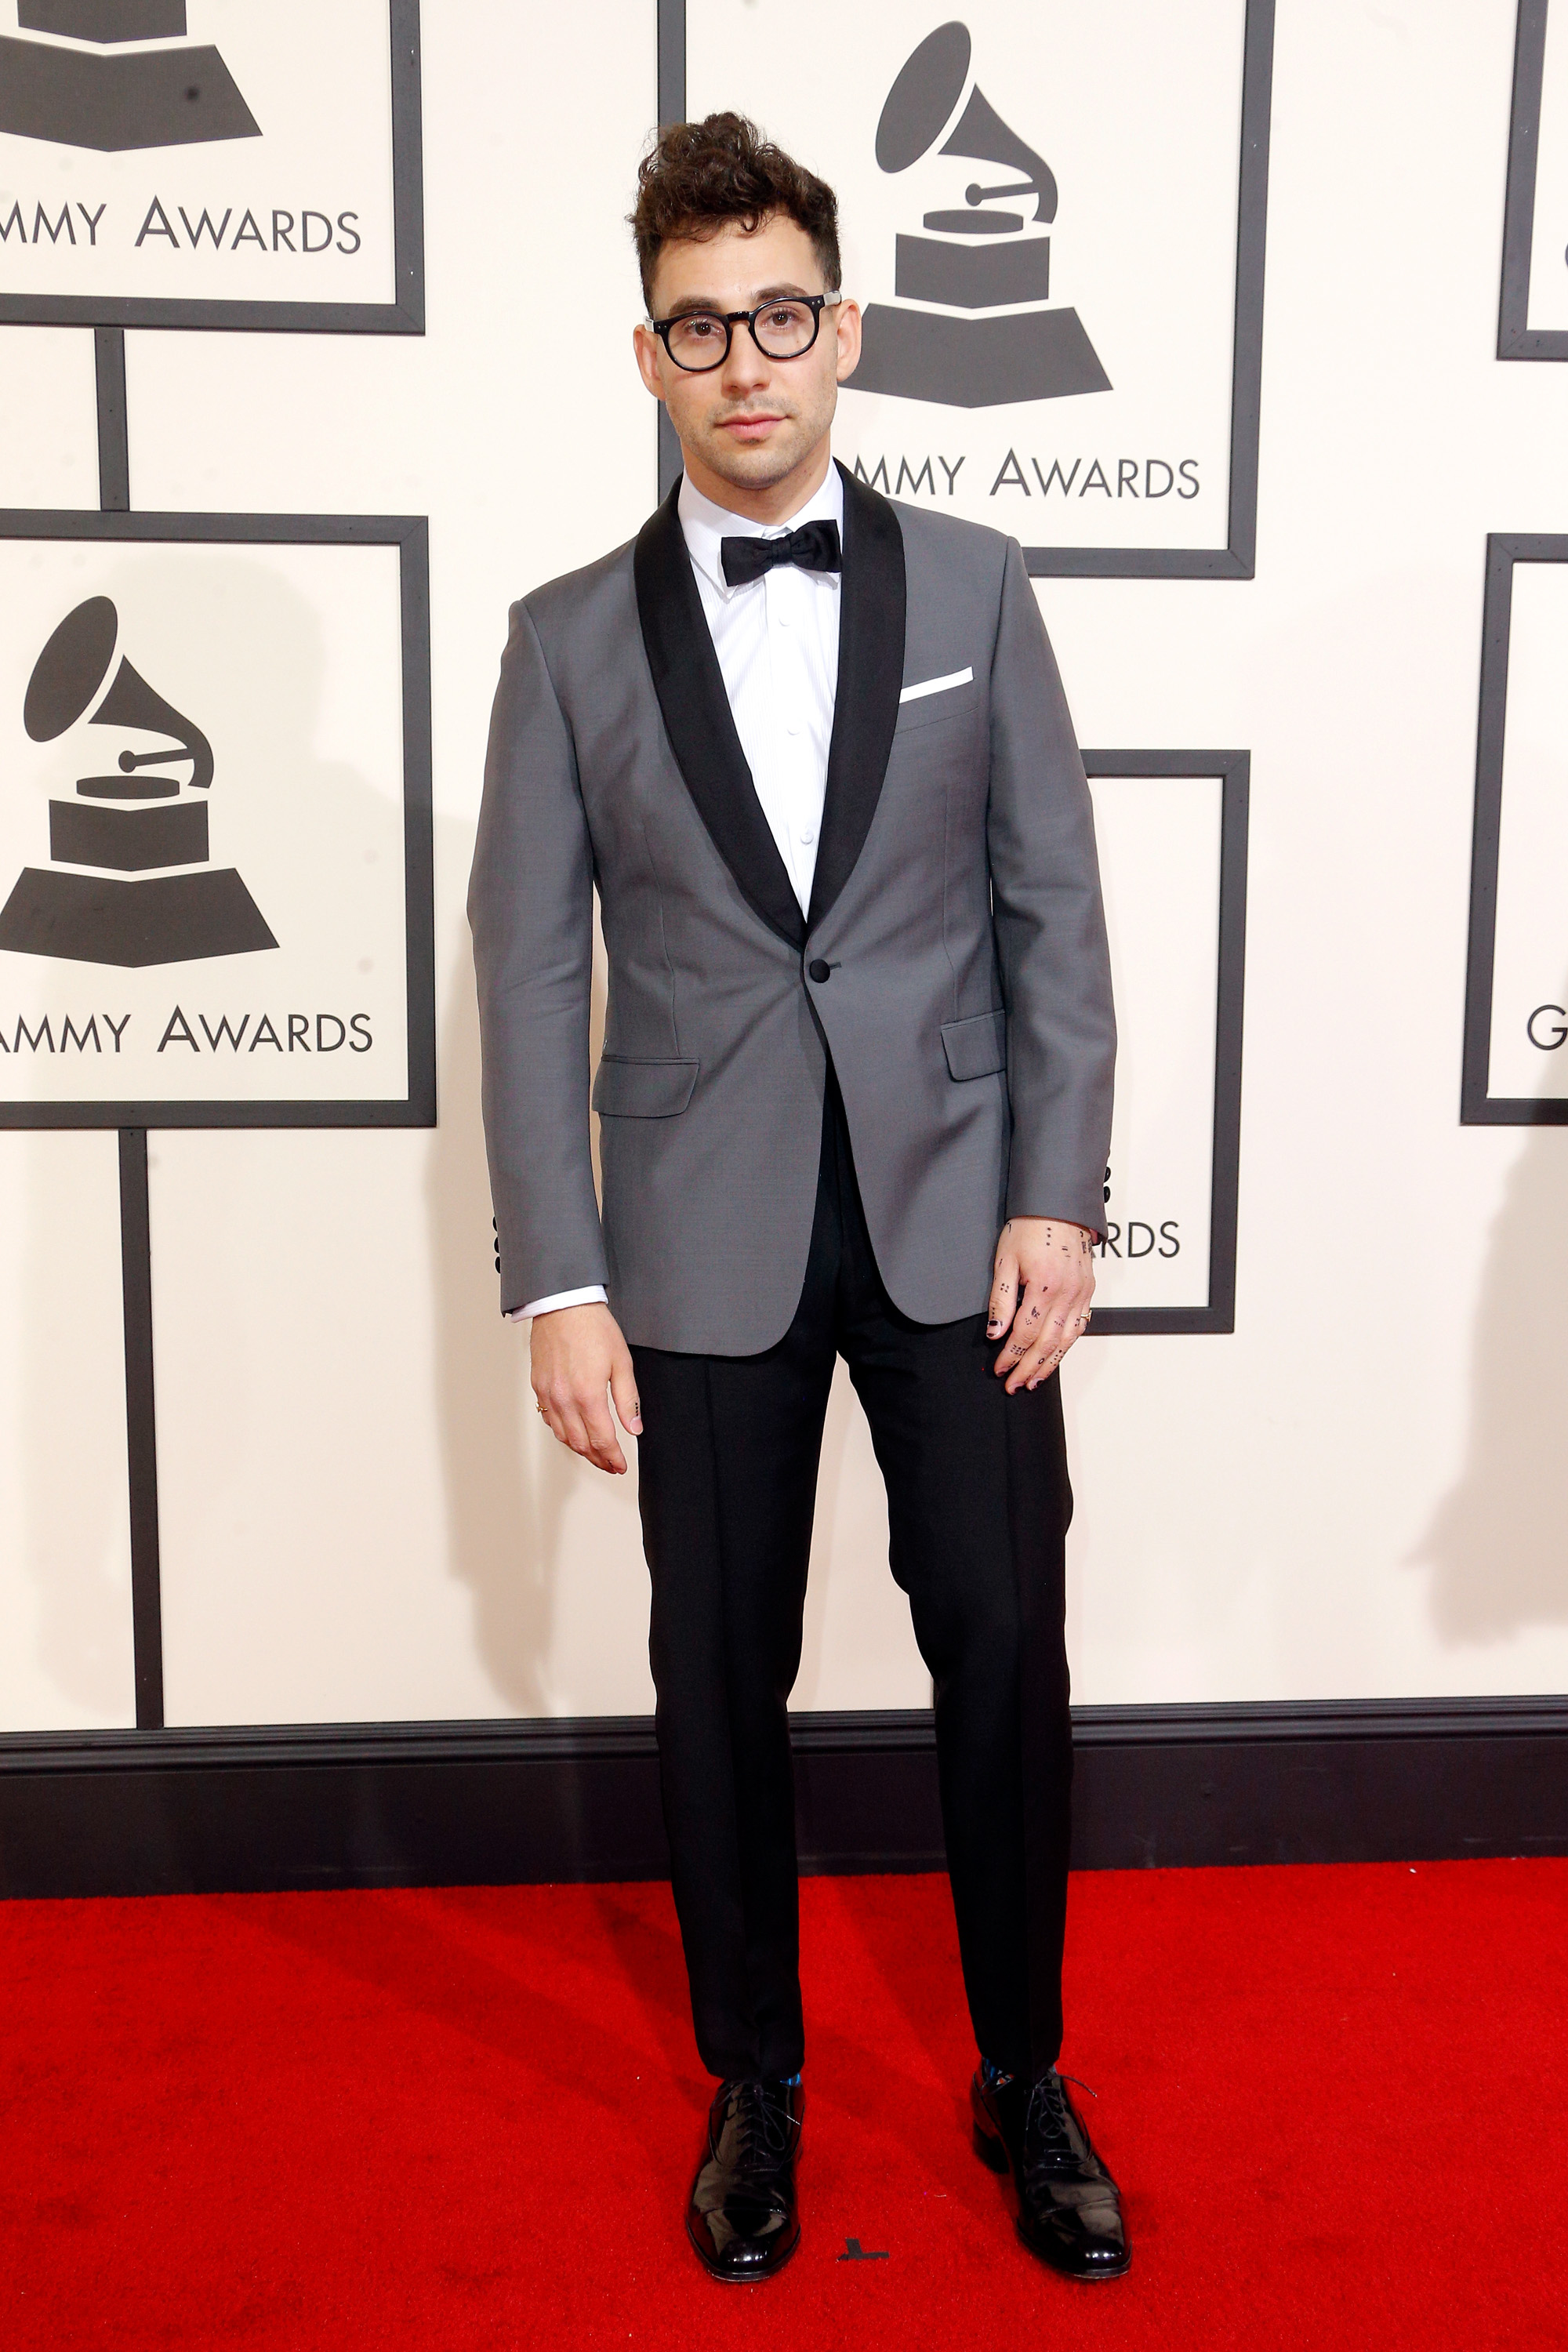 Jack Antonoff attends the 58th GRAMMY Awards at Staples Center on Feb. 15, 2016 in Los Angeles.